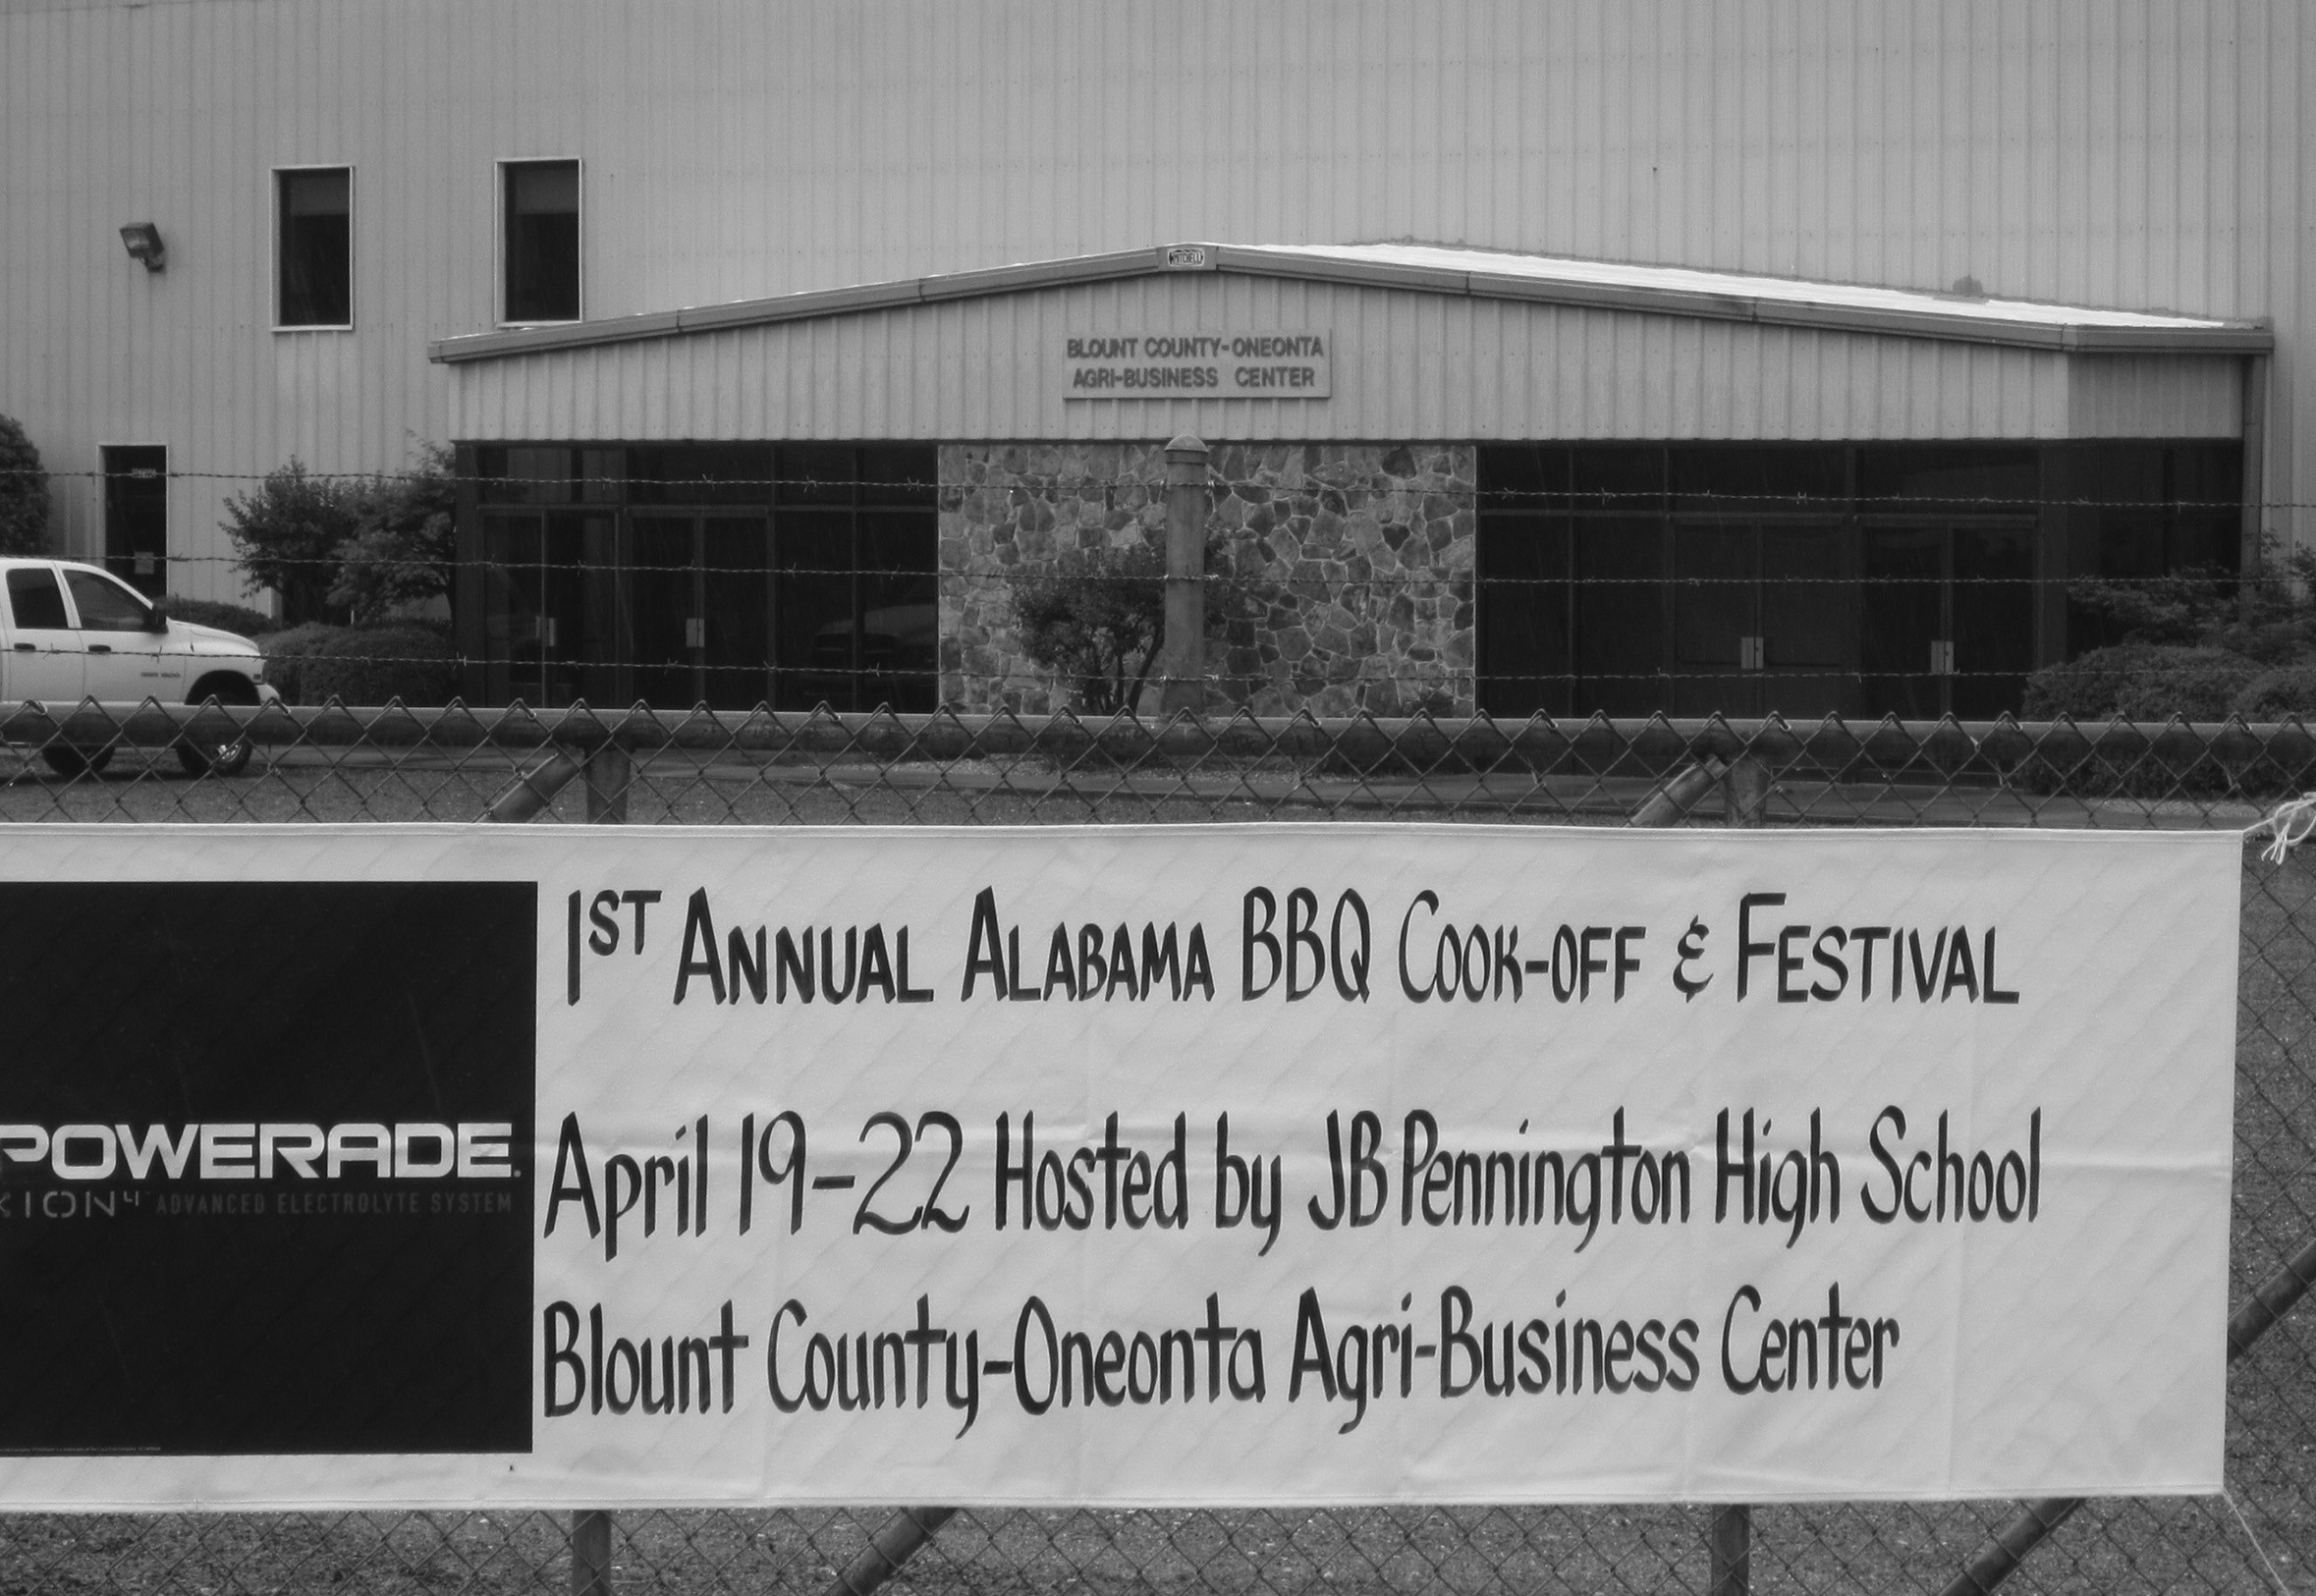 Blount County-Oneonta Agri-Busines Center: site of First Annual Alabama BBQ Cook-off and Festival, where local BBQ pros go up against 'the big boys': out-of-staters from Virginia and Texas.